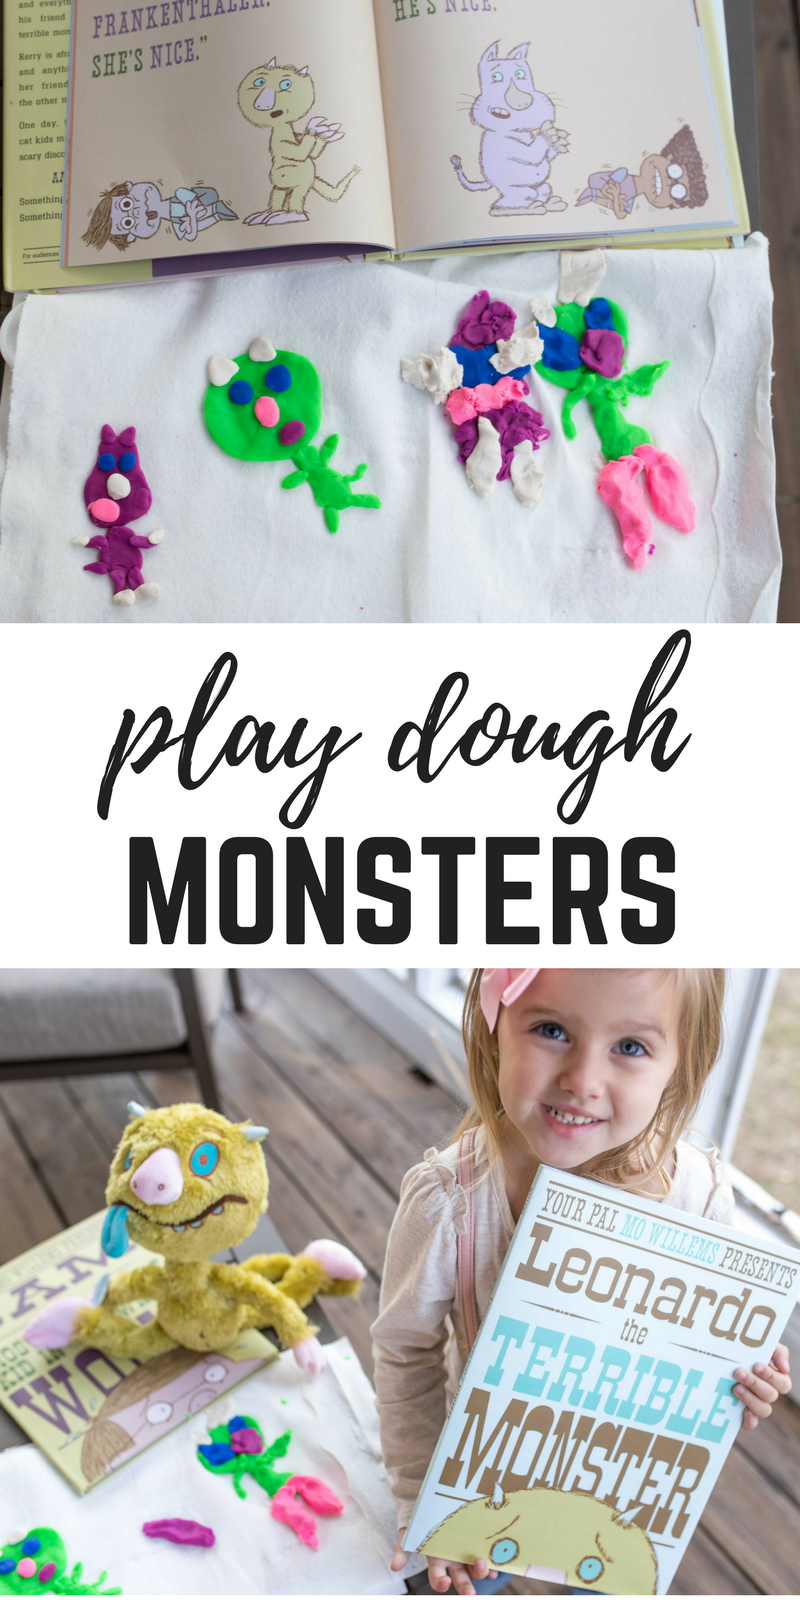 Play Dough Monsters - A fun craft for kids